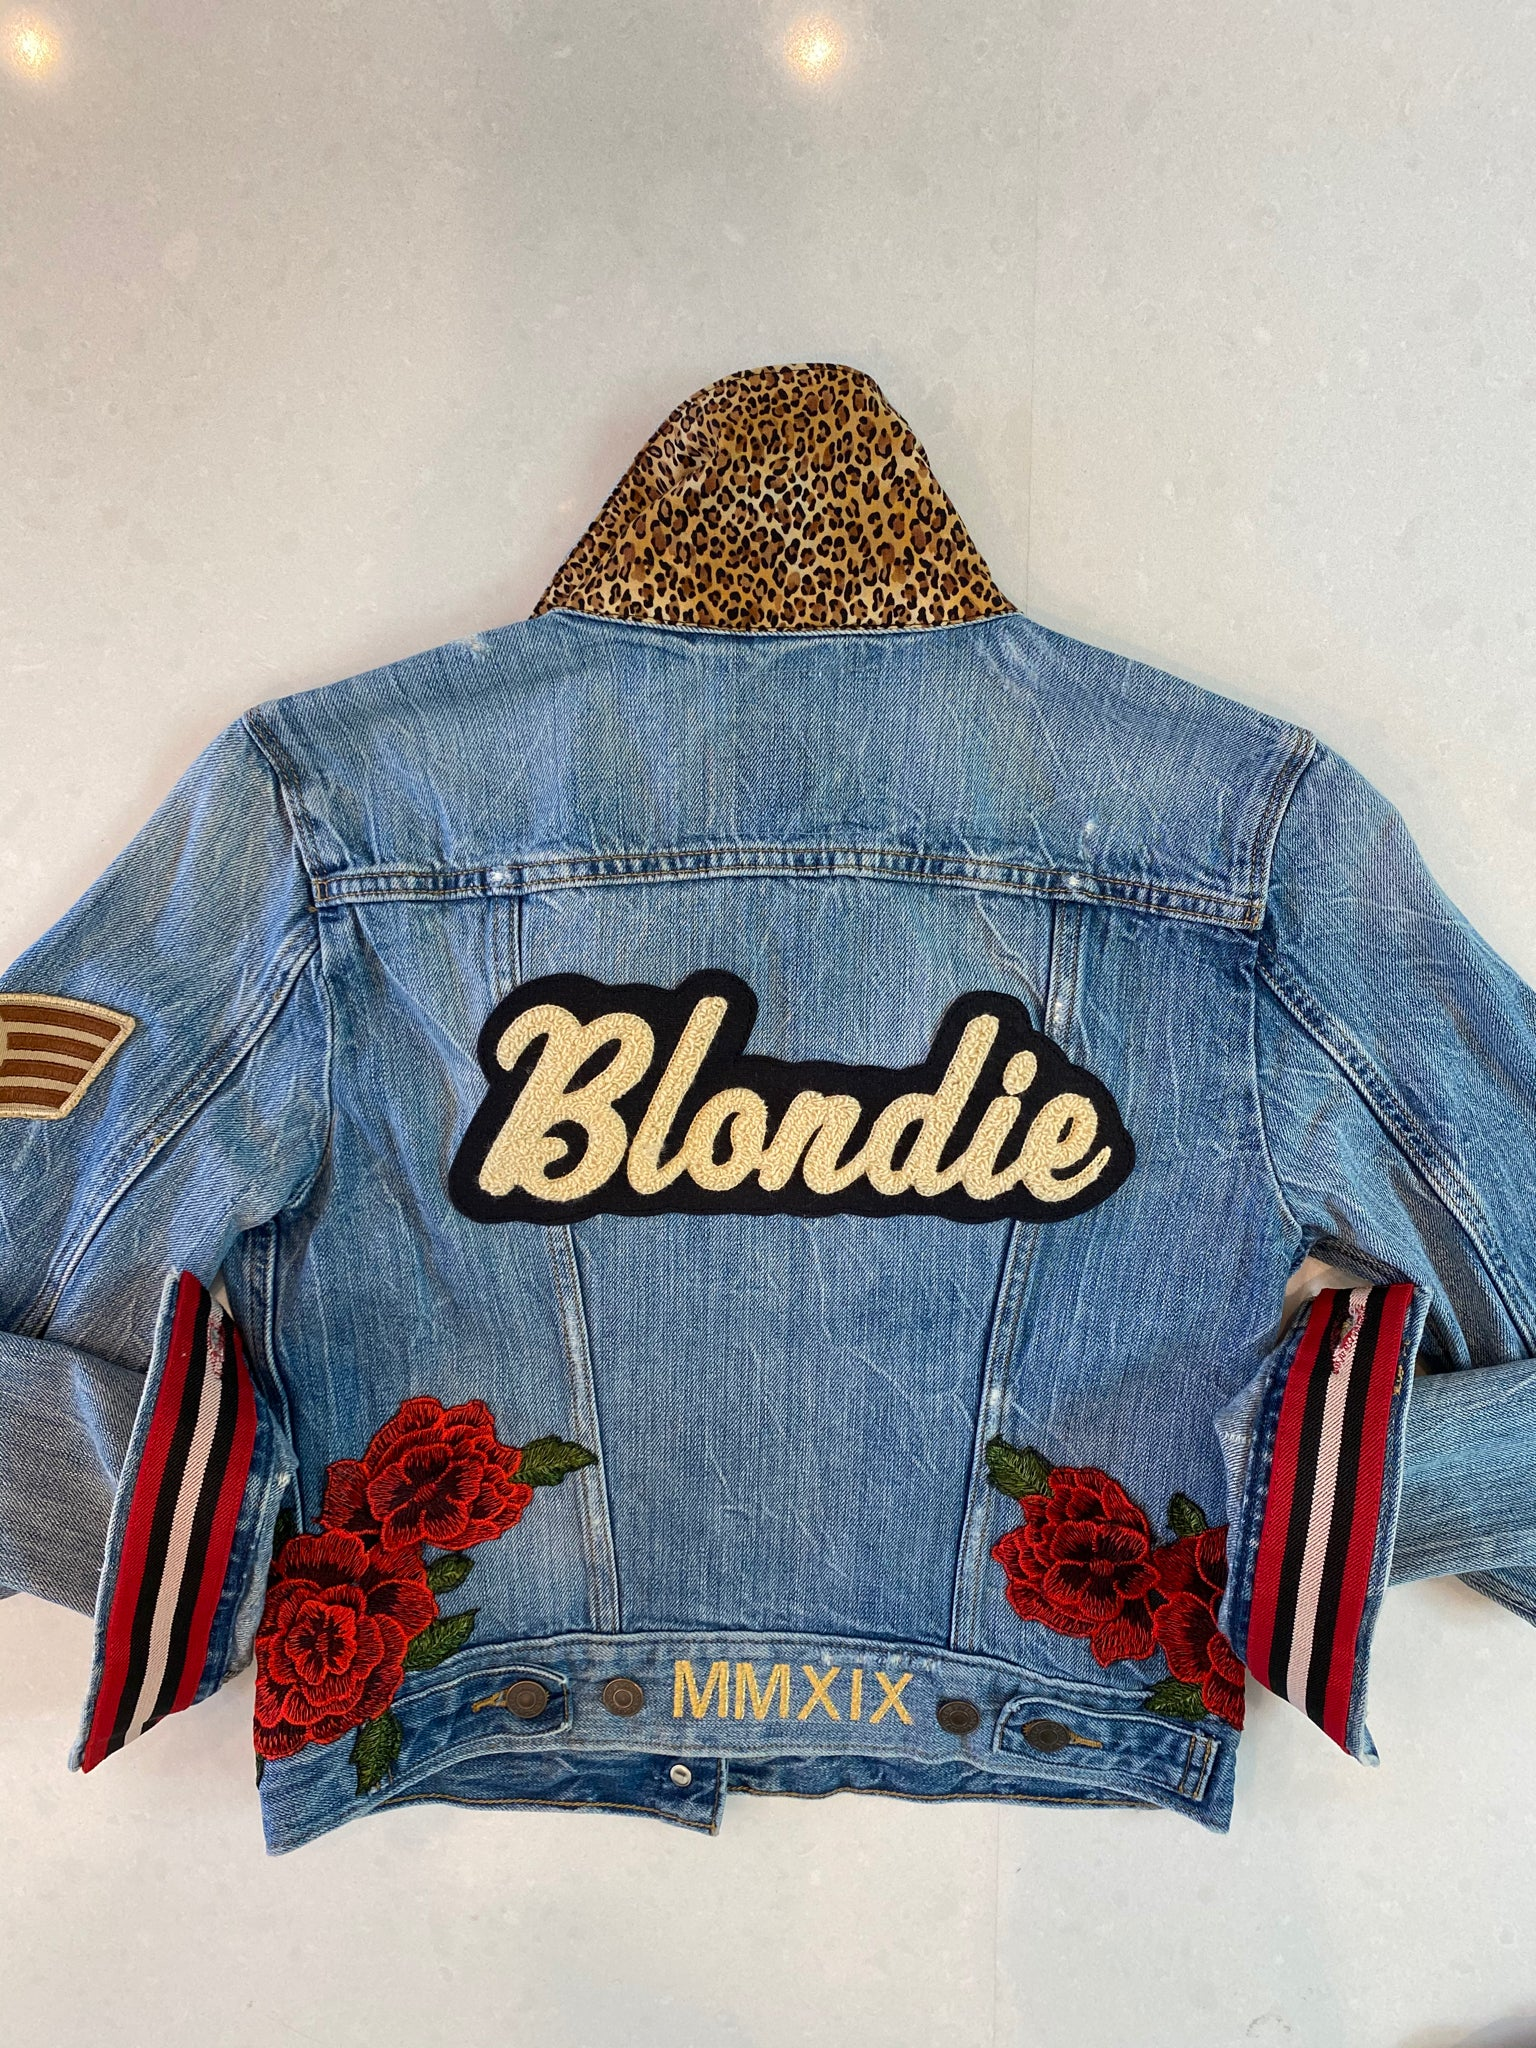 The Blondie Vintage